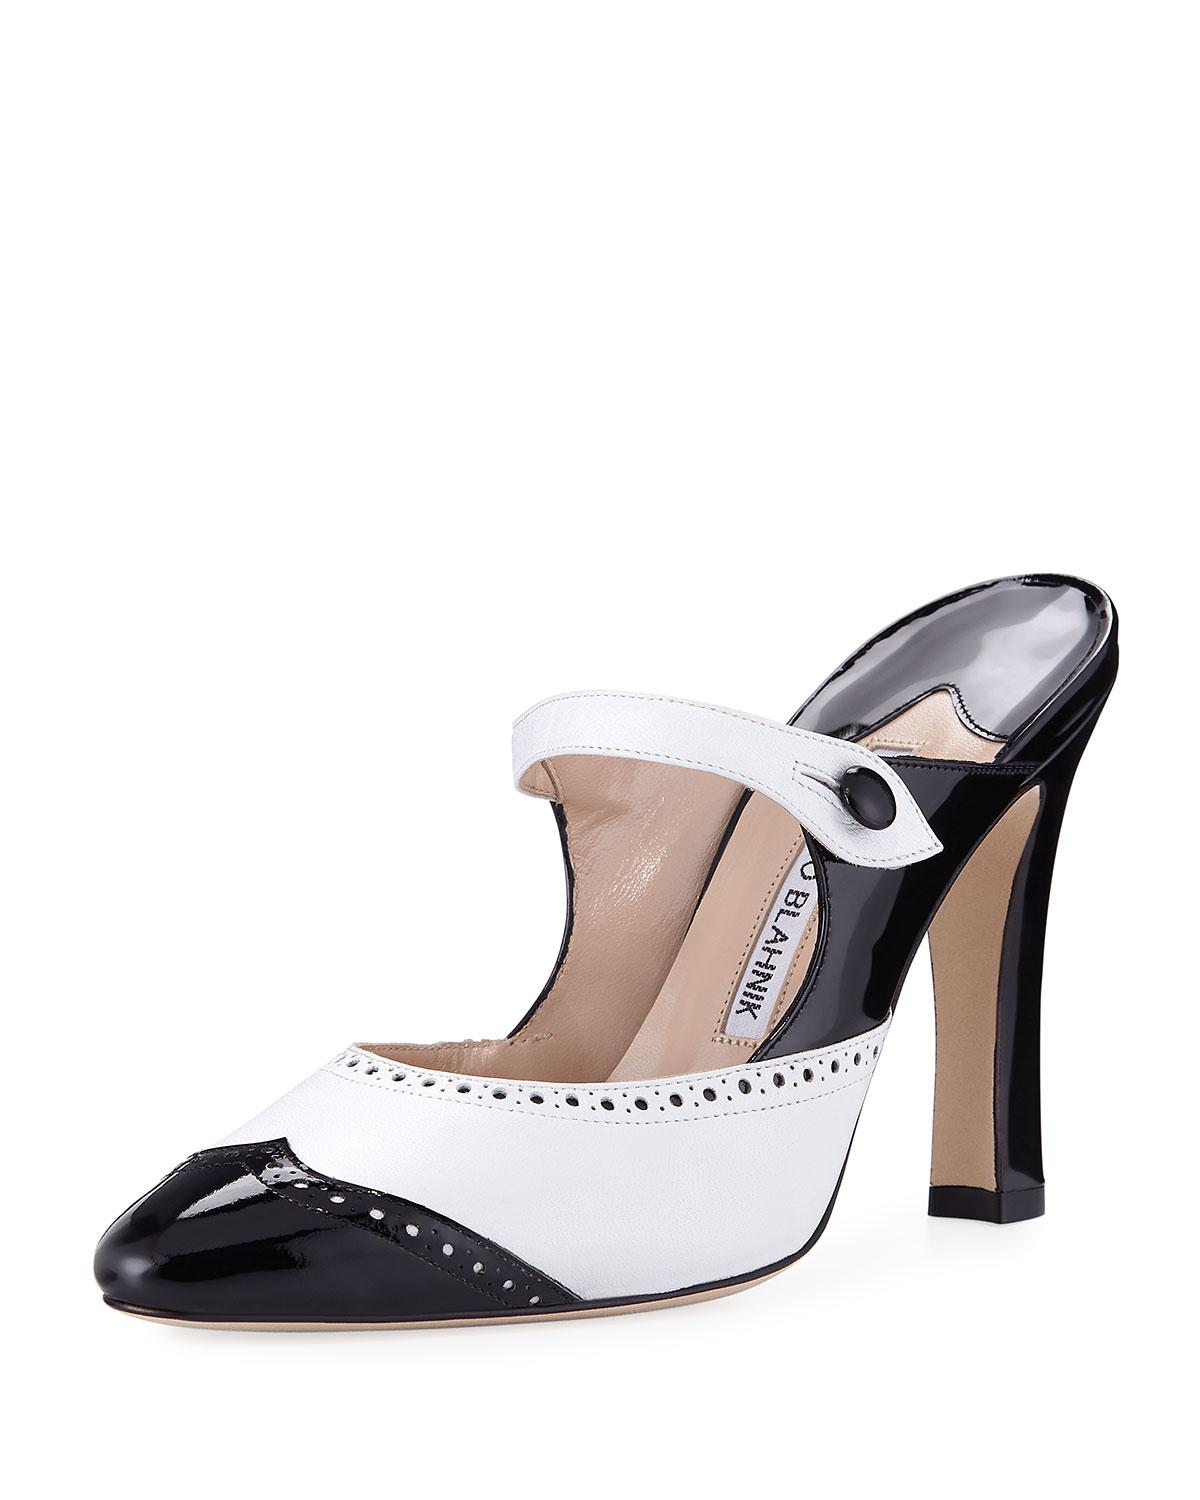 Manolo Blahnik Patent Leather Brogue Pumps buy cheap eastbay best place clearance in China cheap sale big sale cheap sale prices HxFttx